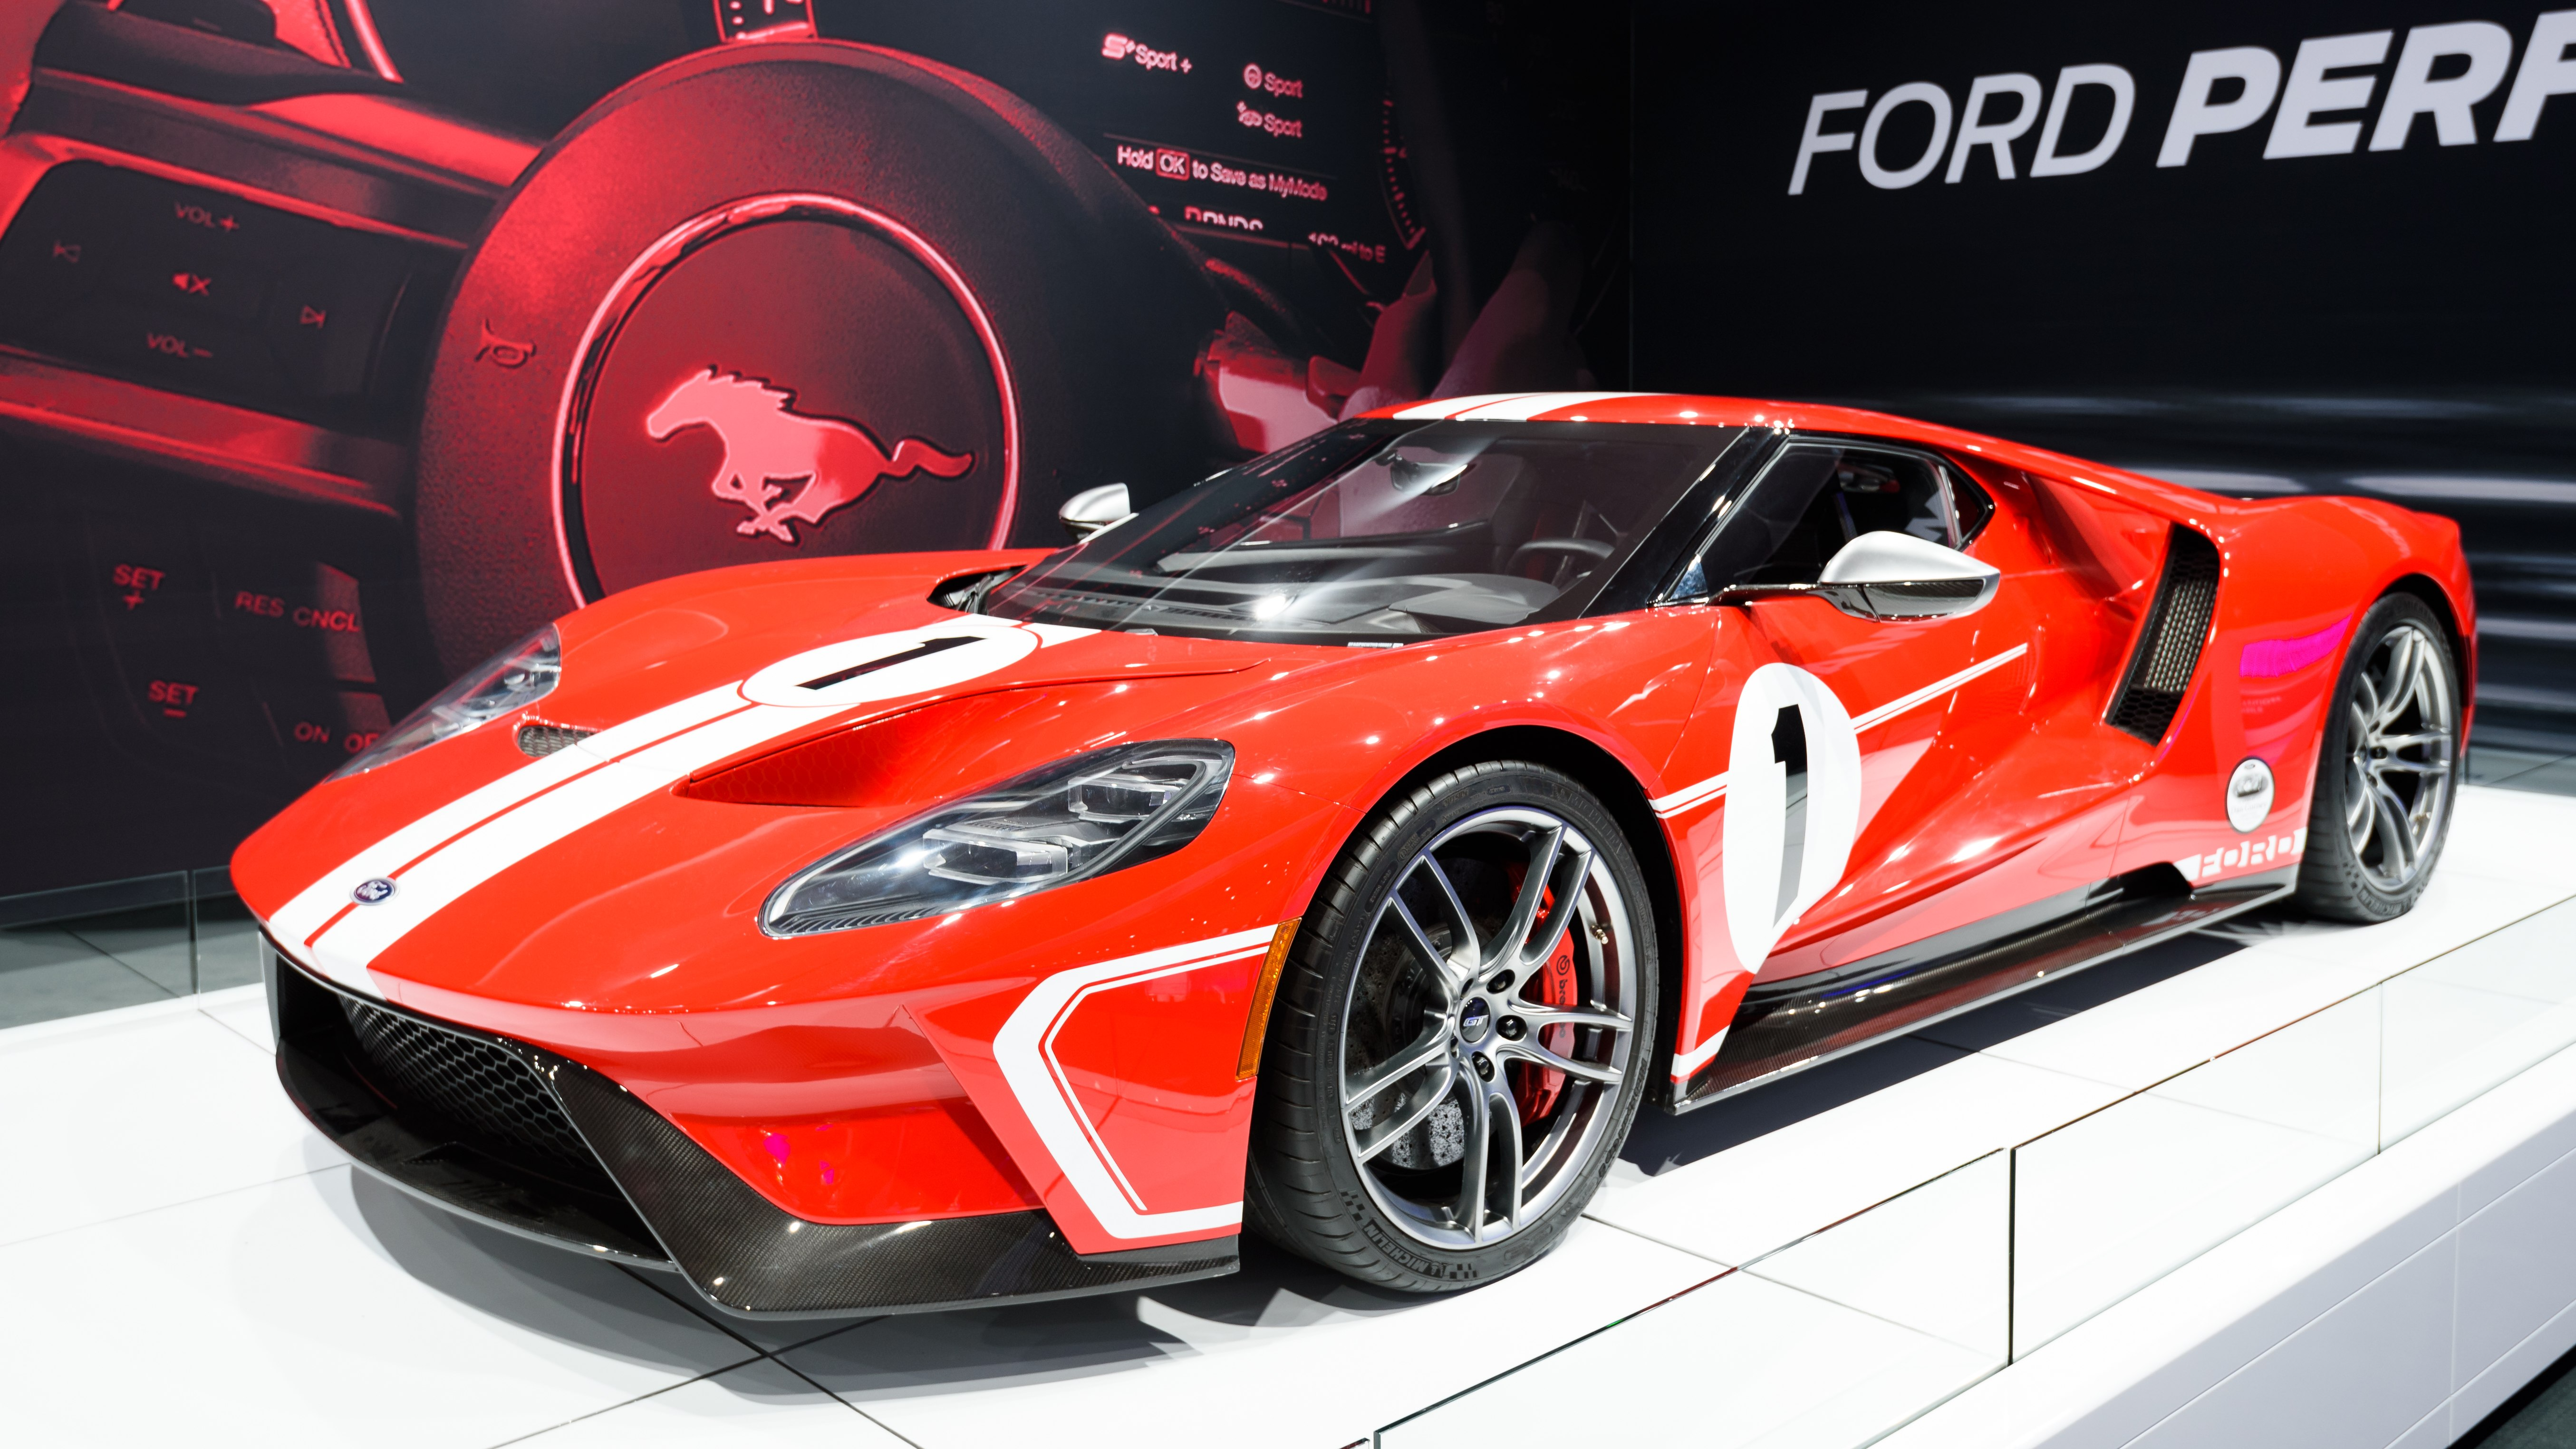 Ford Gt The Complete Information And Online Sale With Free Shipping Order And Buy Now For The Lowest Price In The Best Online Store Discounts Coupons